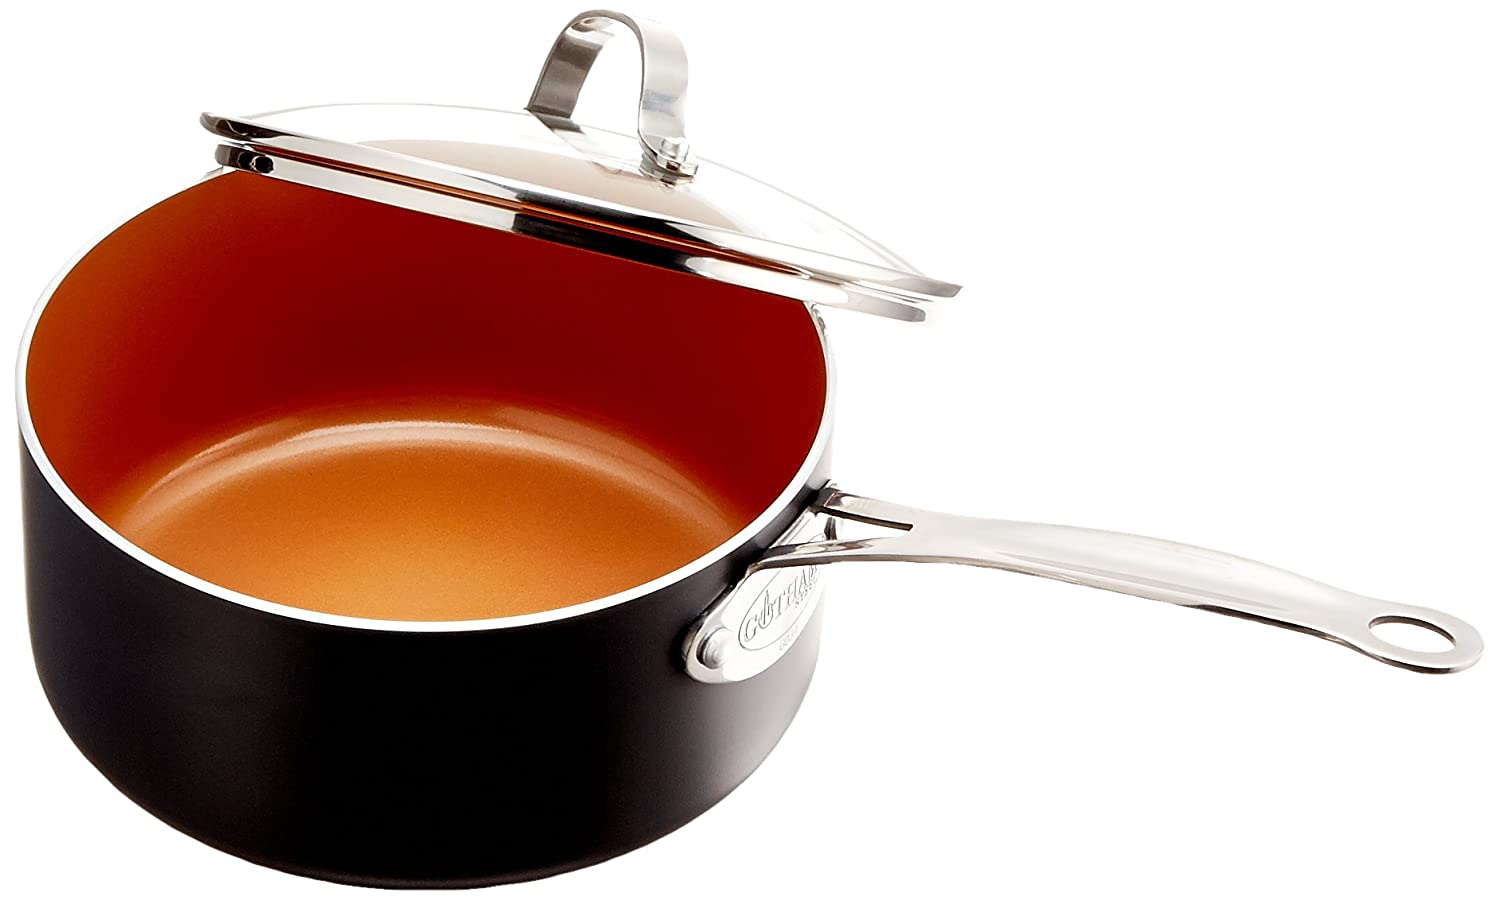 Gotham Steel Titanium and Ceramic Nonstick Copper 3-Quart Stock Pot With Lid